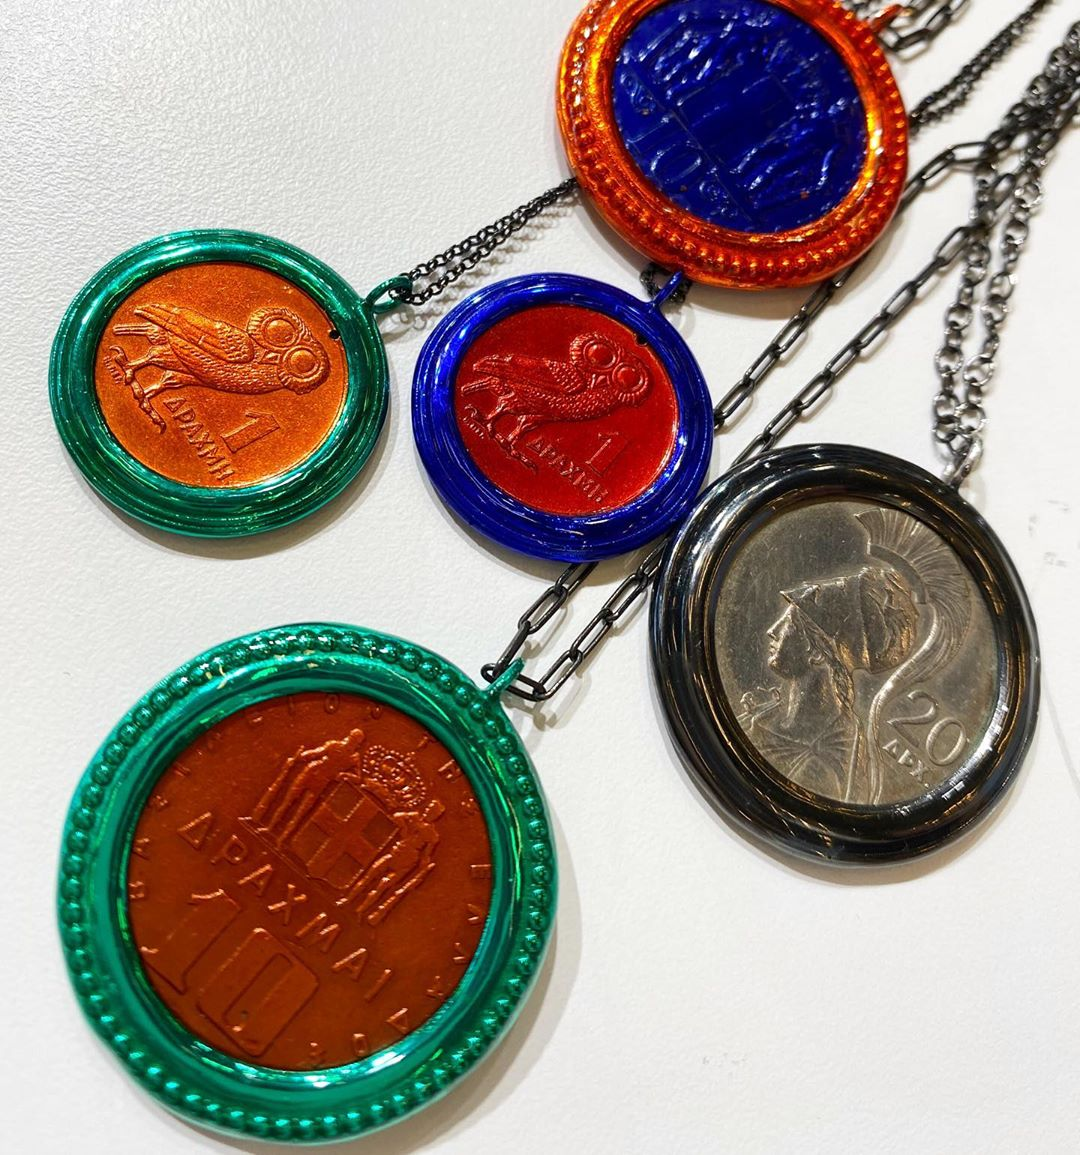 """[JEWELRY, A PASSPORT TO GREECE] I particularity like the money-money collection of @mariakaprilifinejewelry Kaprili colors #ancientcoins and their settings in orange, electric blue, green and yellow, using an electrostatic technique """"I got the idea when I inherited my uncle's coin collection,"""" she says. Coins were vital objects in Greek culture: they were given as gifts at special occasions in life, like marriage, when the family would provide the #coins decorating the bride's pectoral jewelry as a dowry. They were also treasure that could be easily carried away in times of hardship. More in my bio  #ilovegreece #discovergreece #kolonaki #athens #greekjewelry @reasonstovisitgreece @discover.greece @visitgreecegr @centreculturelhellenique @aegeanairlines"""